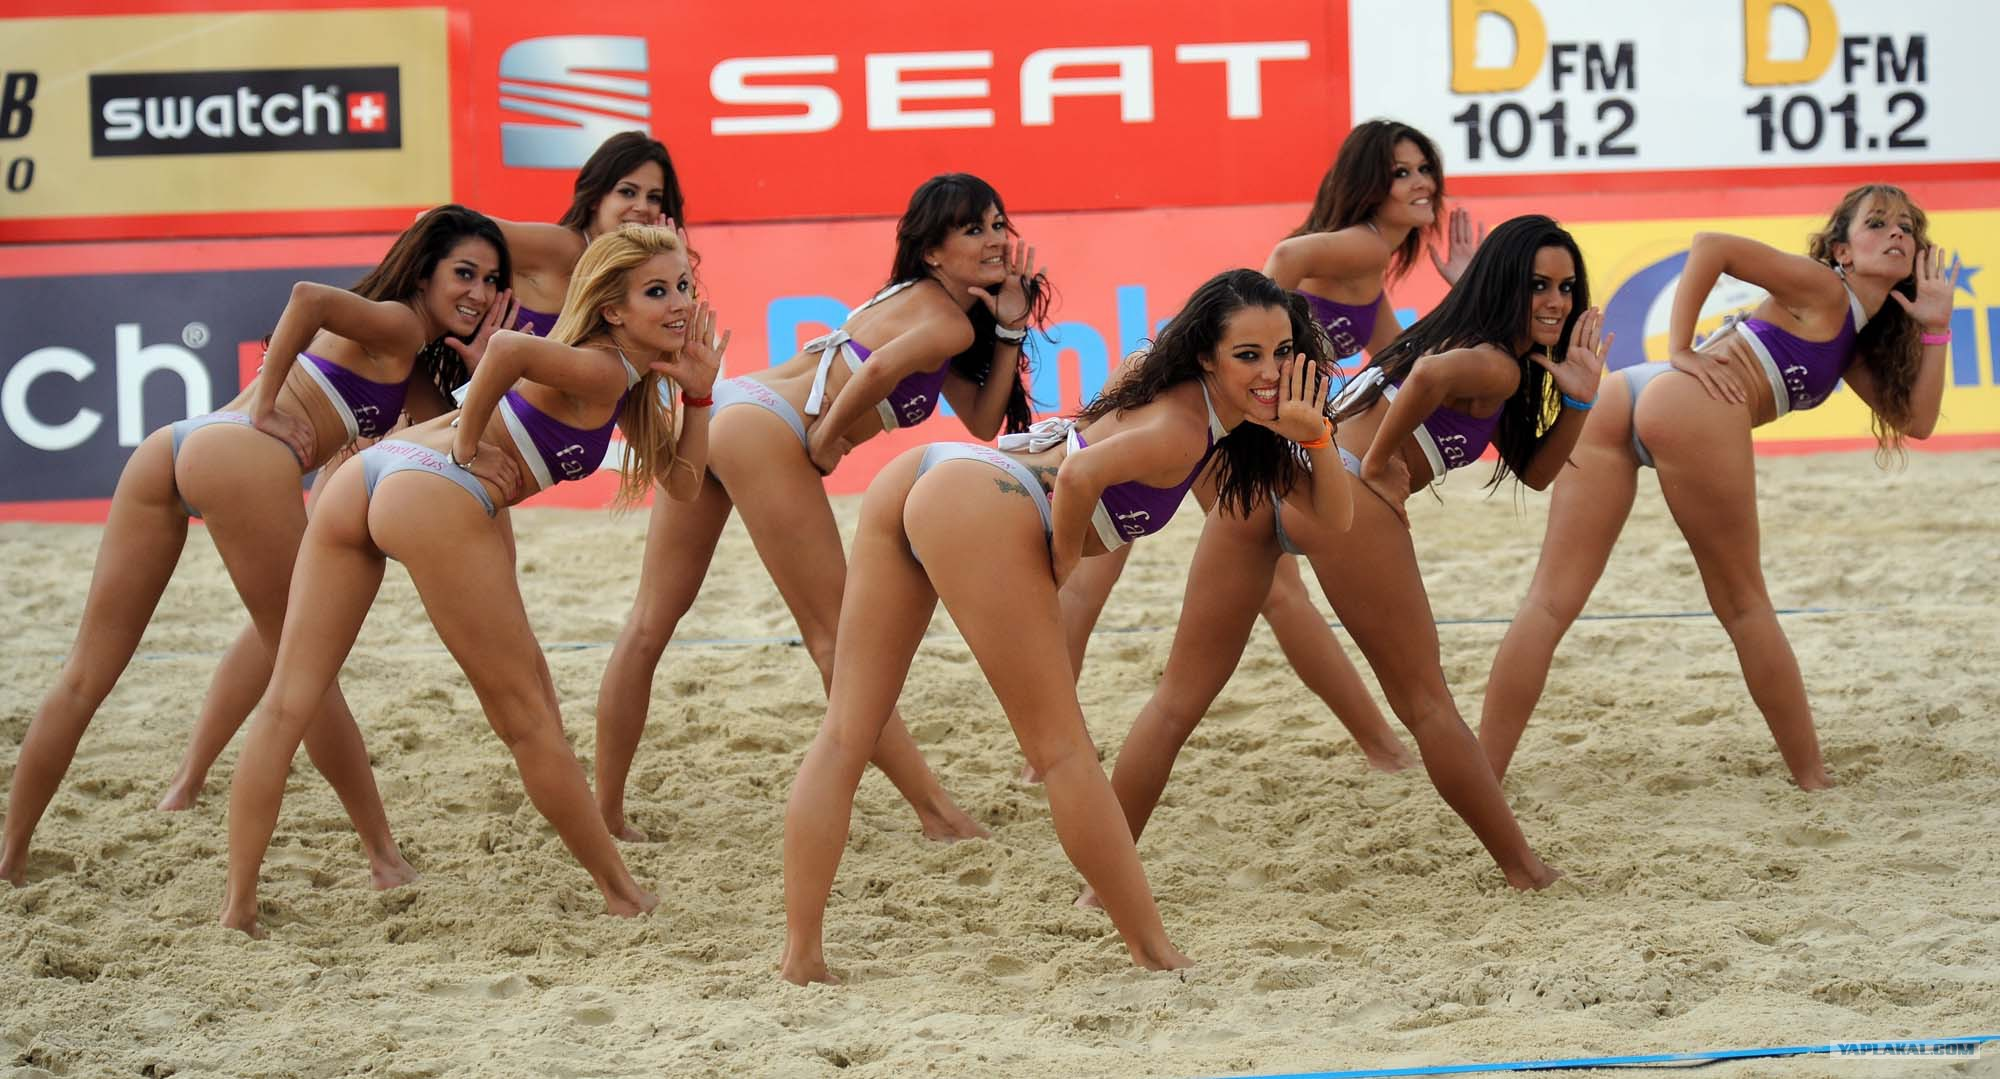 beach-volleyball-women-tits-in-mexico